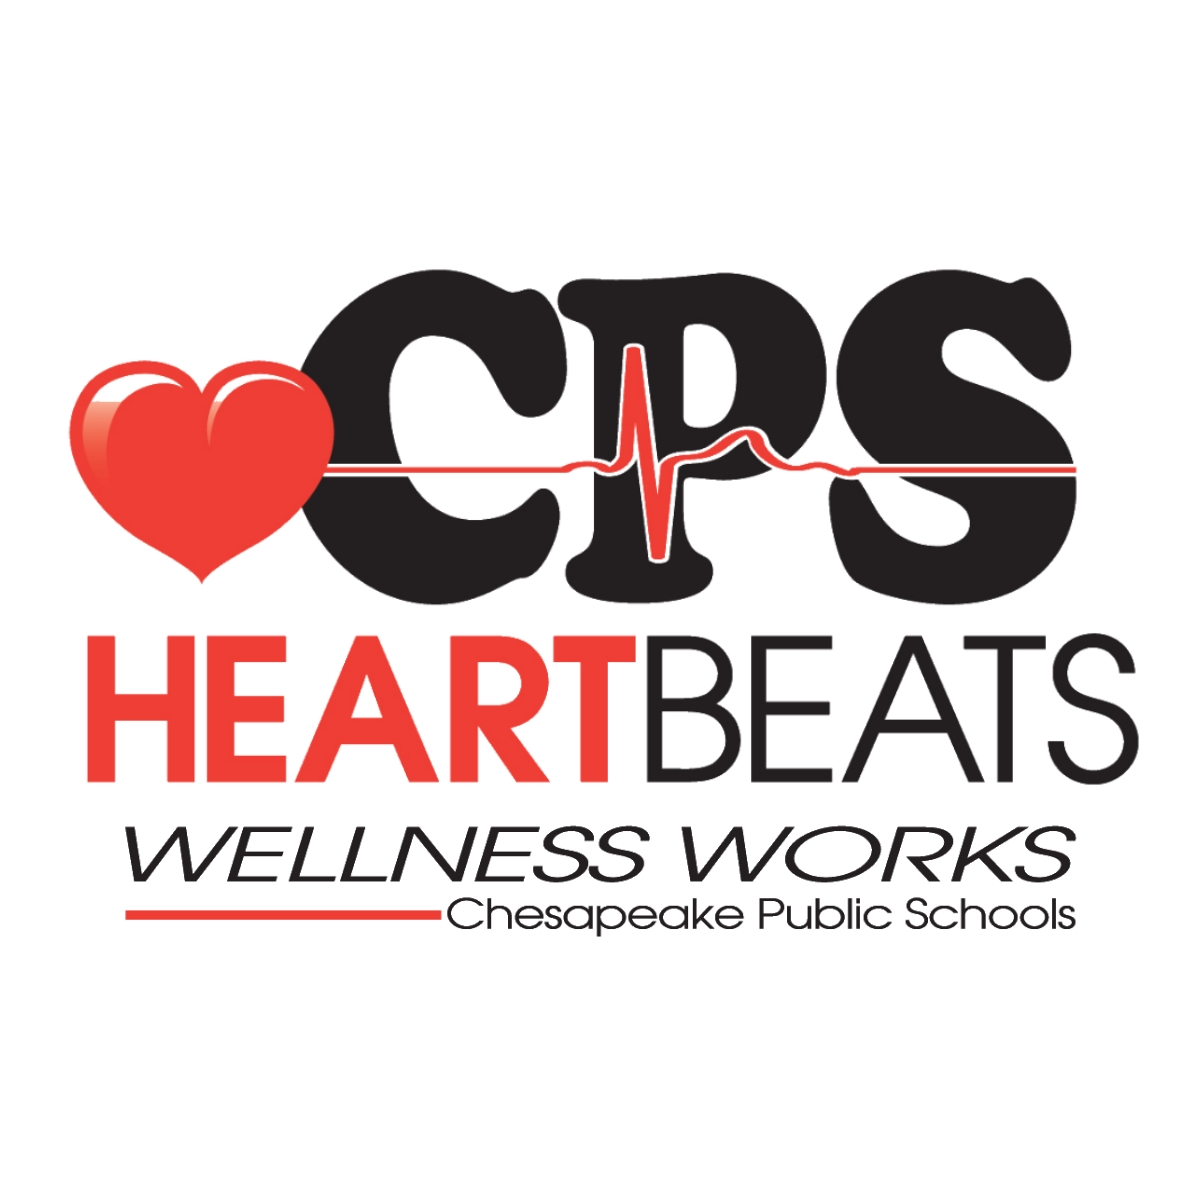 CPS Heartbeats – Chesapeake Public Schools Employee Wellness Program